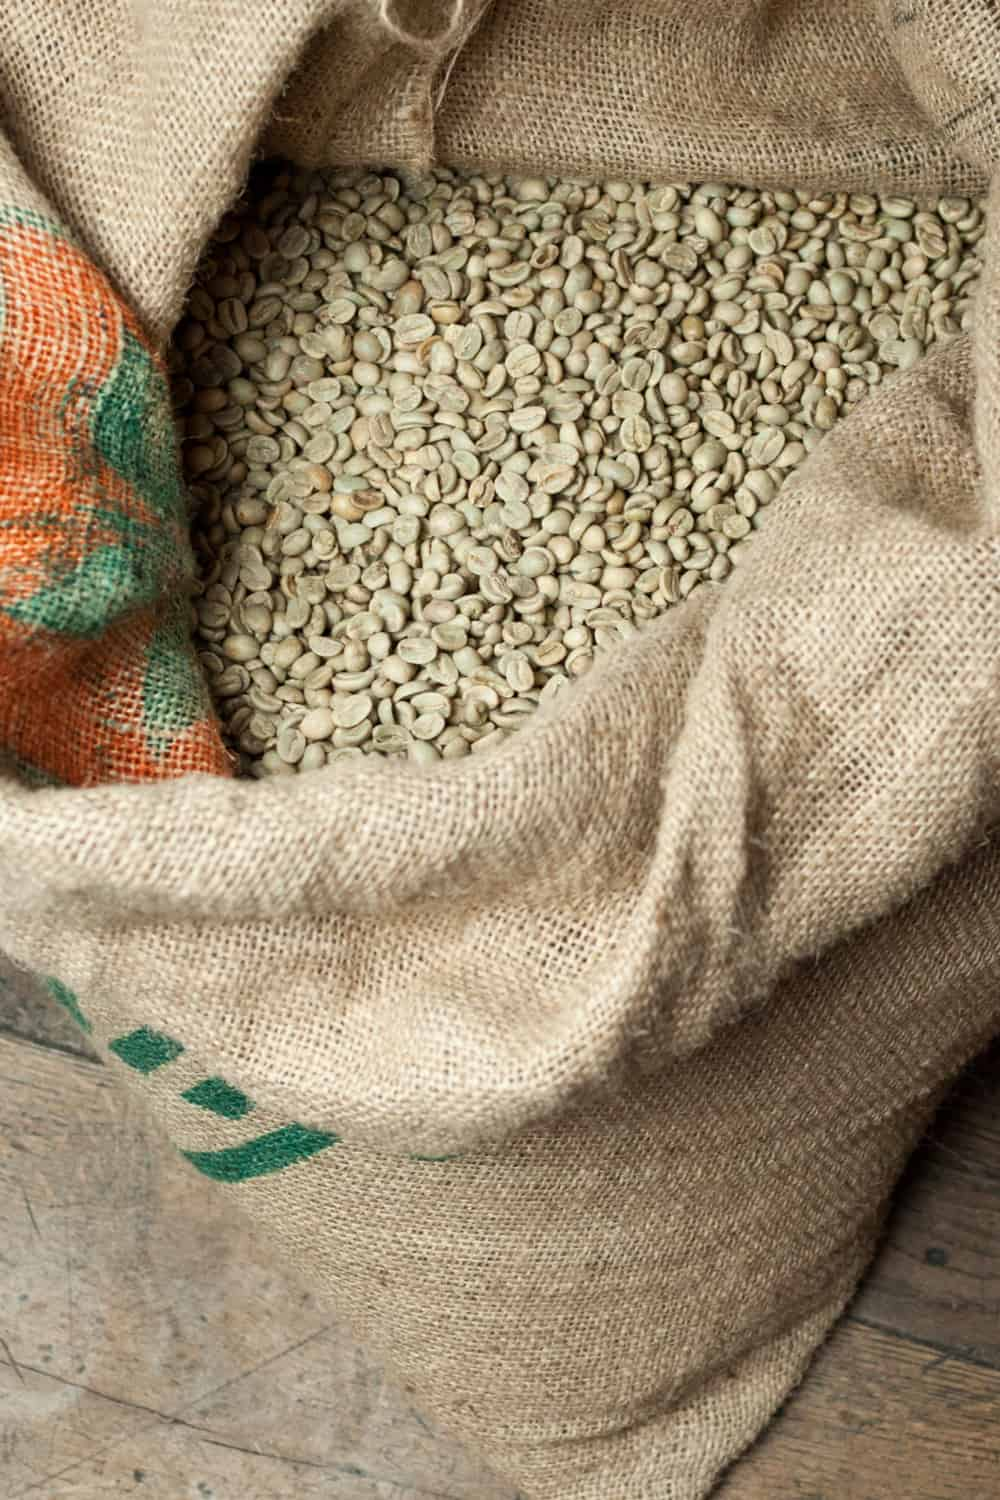 green coffee beans for sale